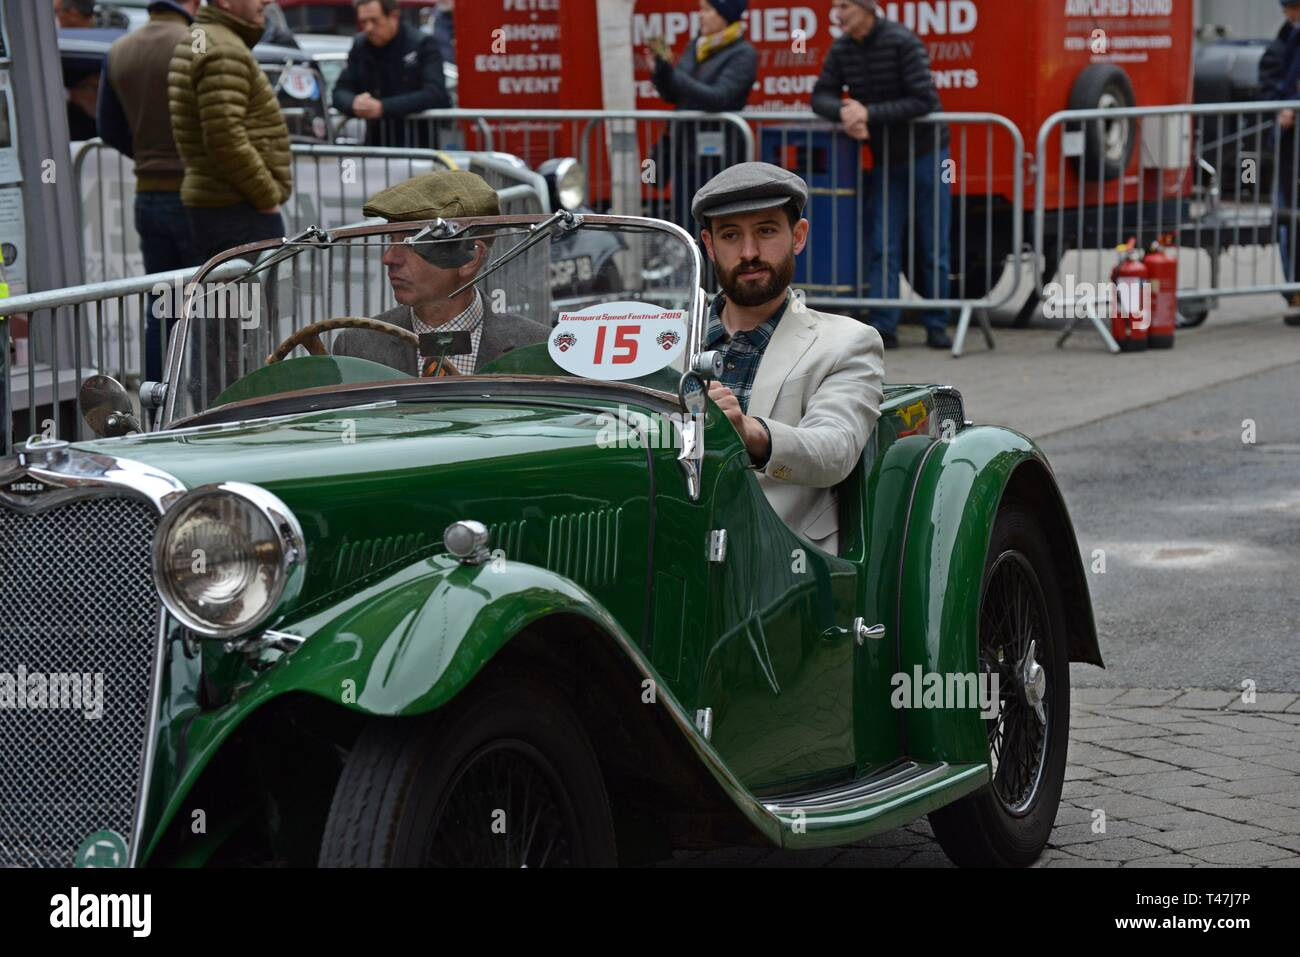 Bromyard, Herefordshire 7 April 2019. Streets are closed for annual Bromyard Speed Festival. Vintage & classic cars & bikes circuit the streets. - Stock Image